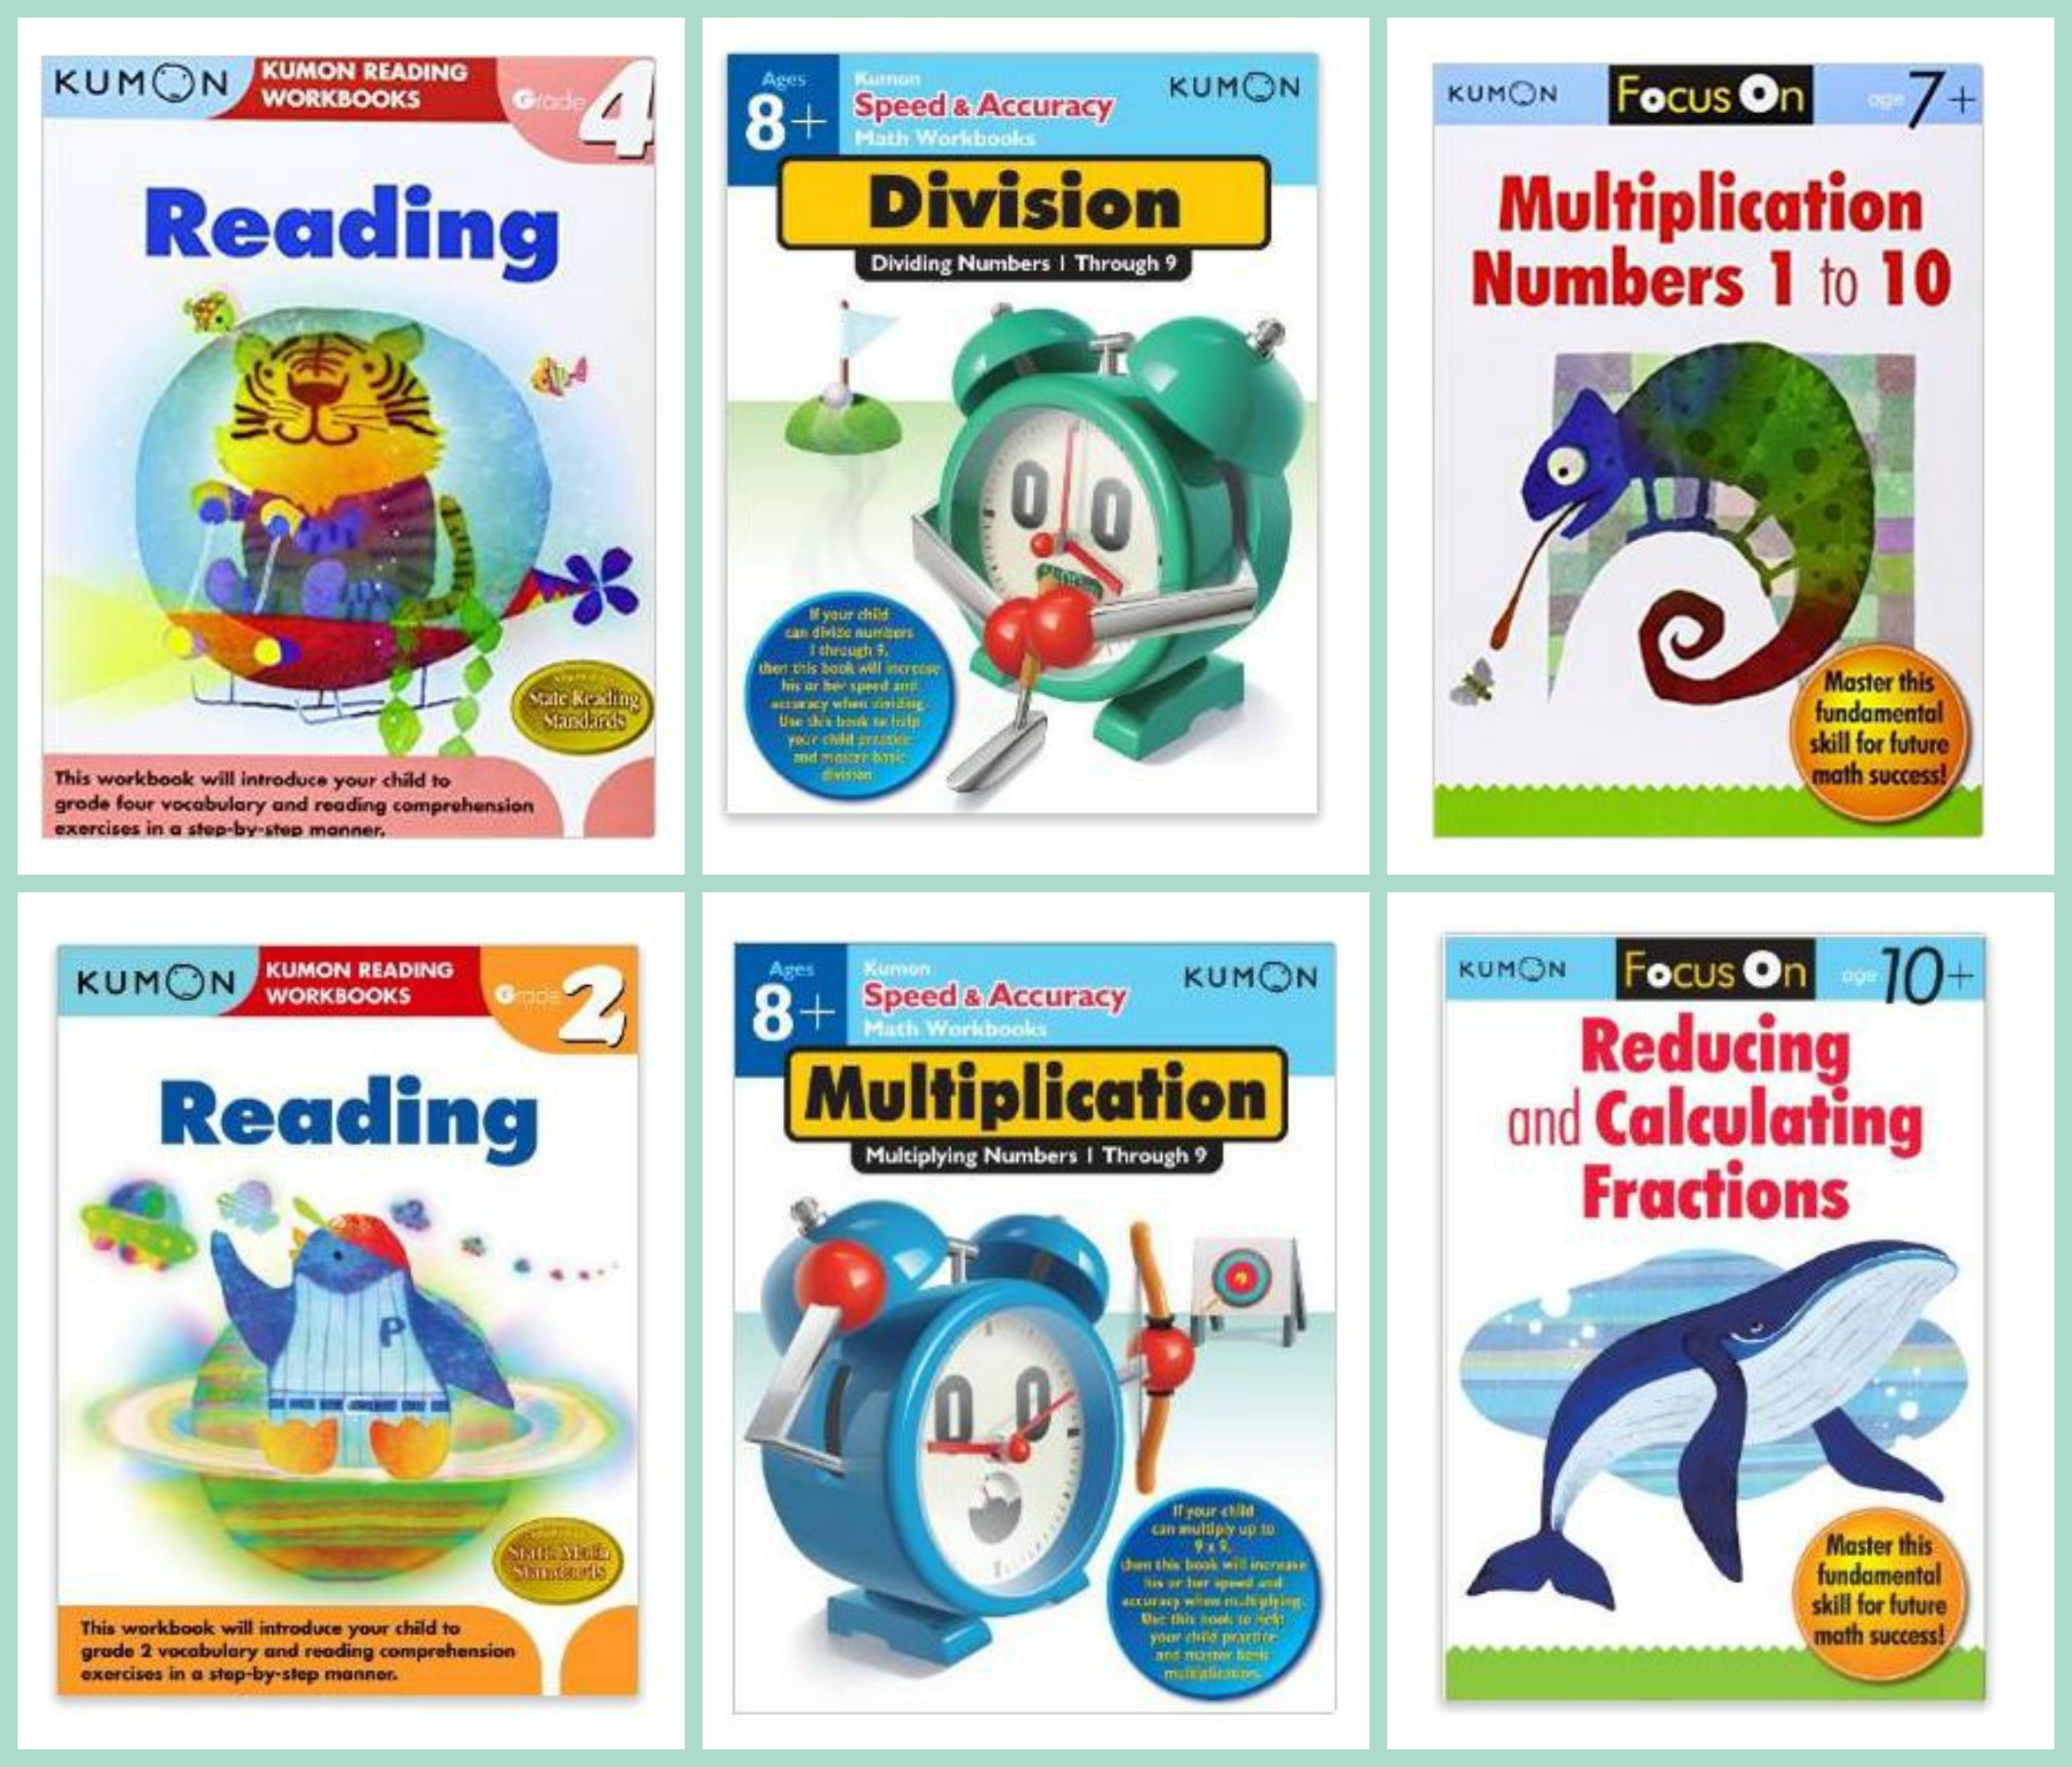 Amazon: Kumon Workbooks Starting At $5.95 Shipped | Passionate Penny ...